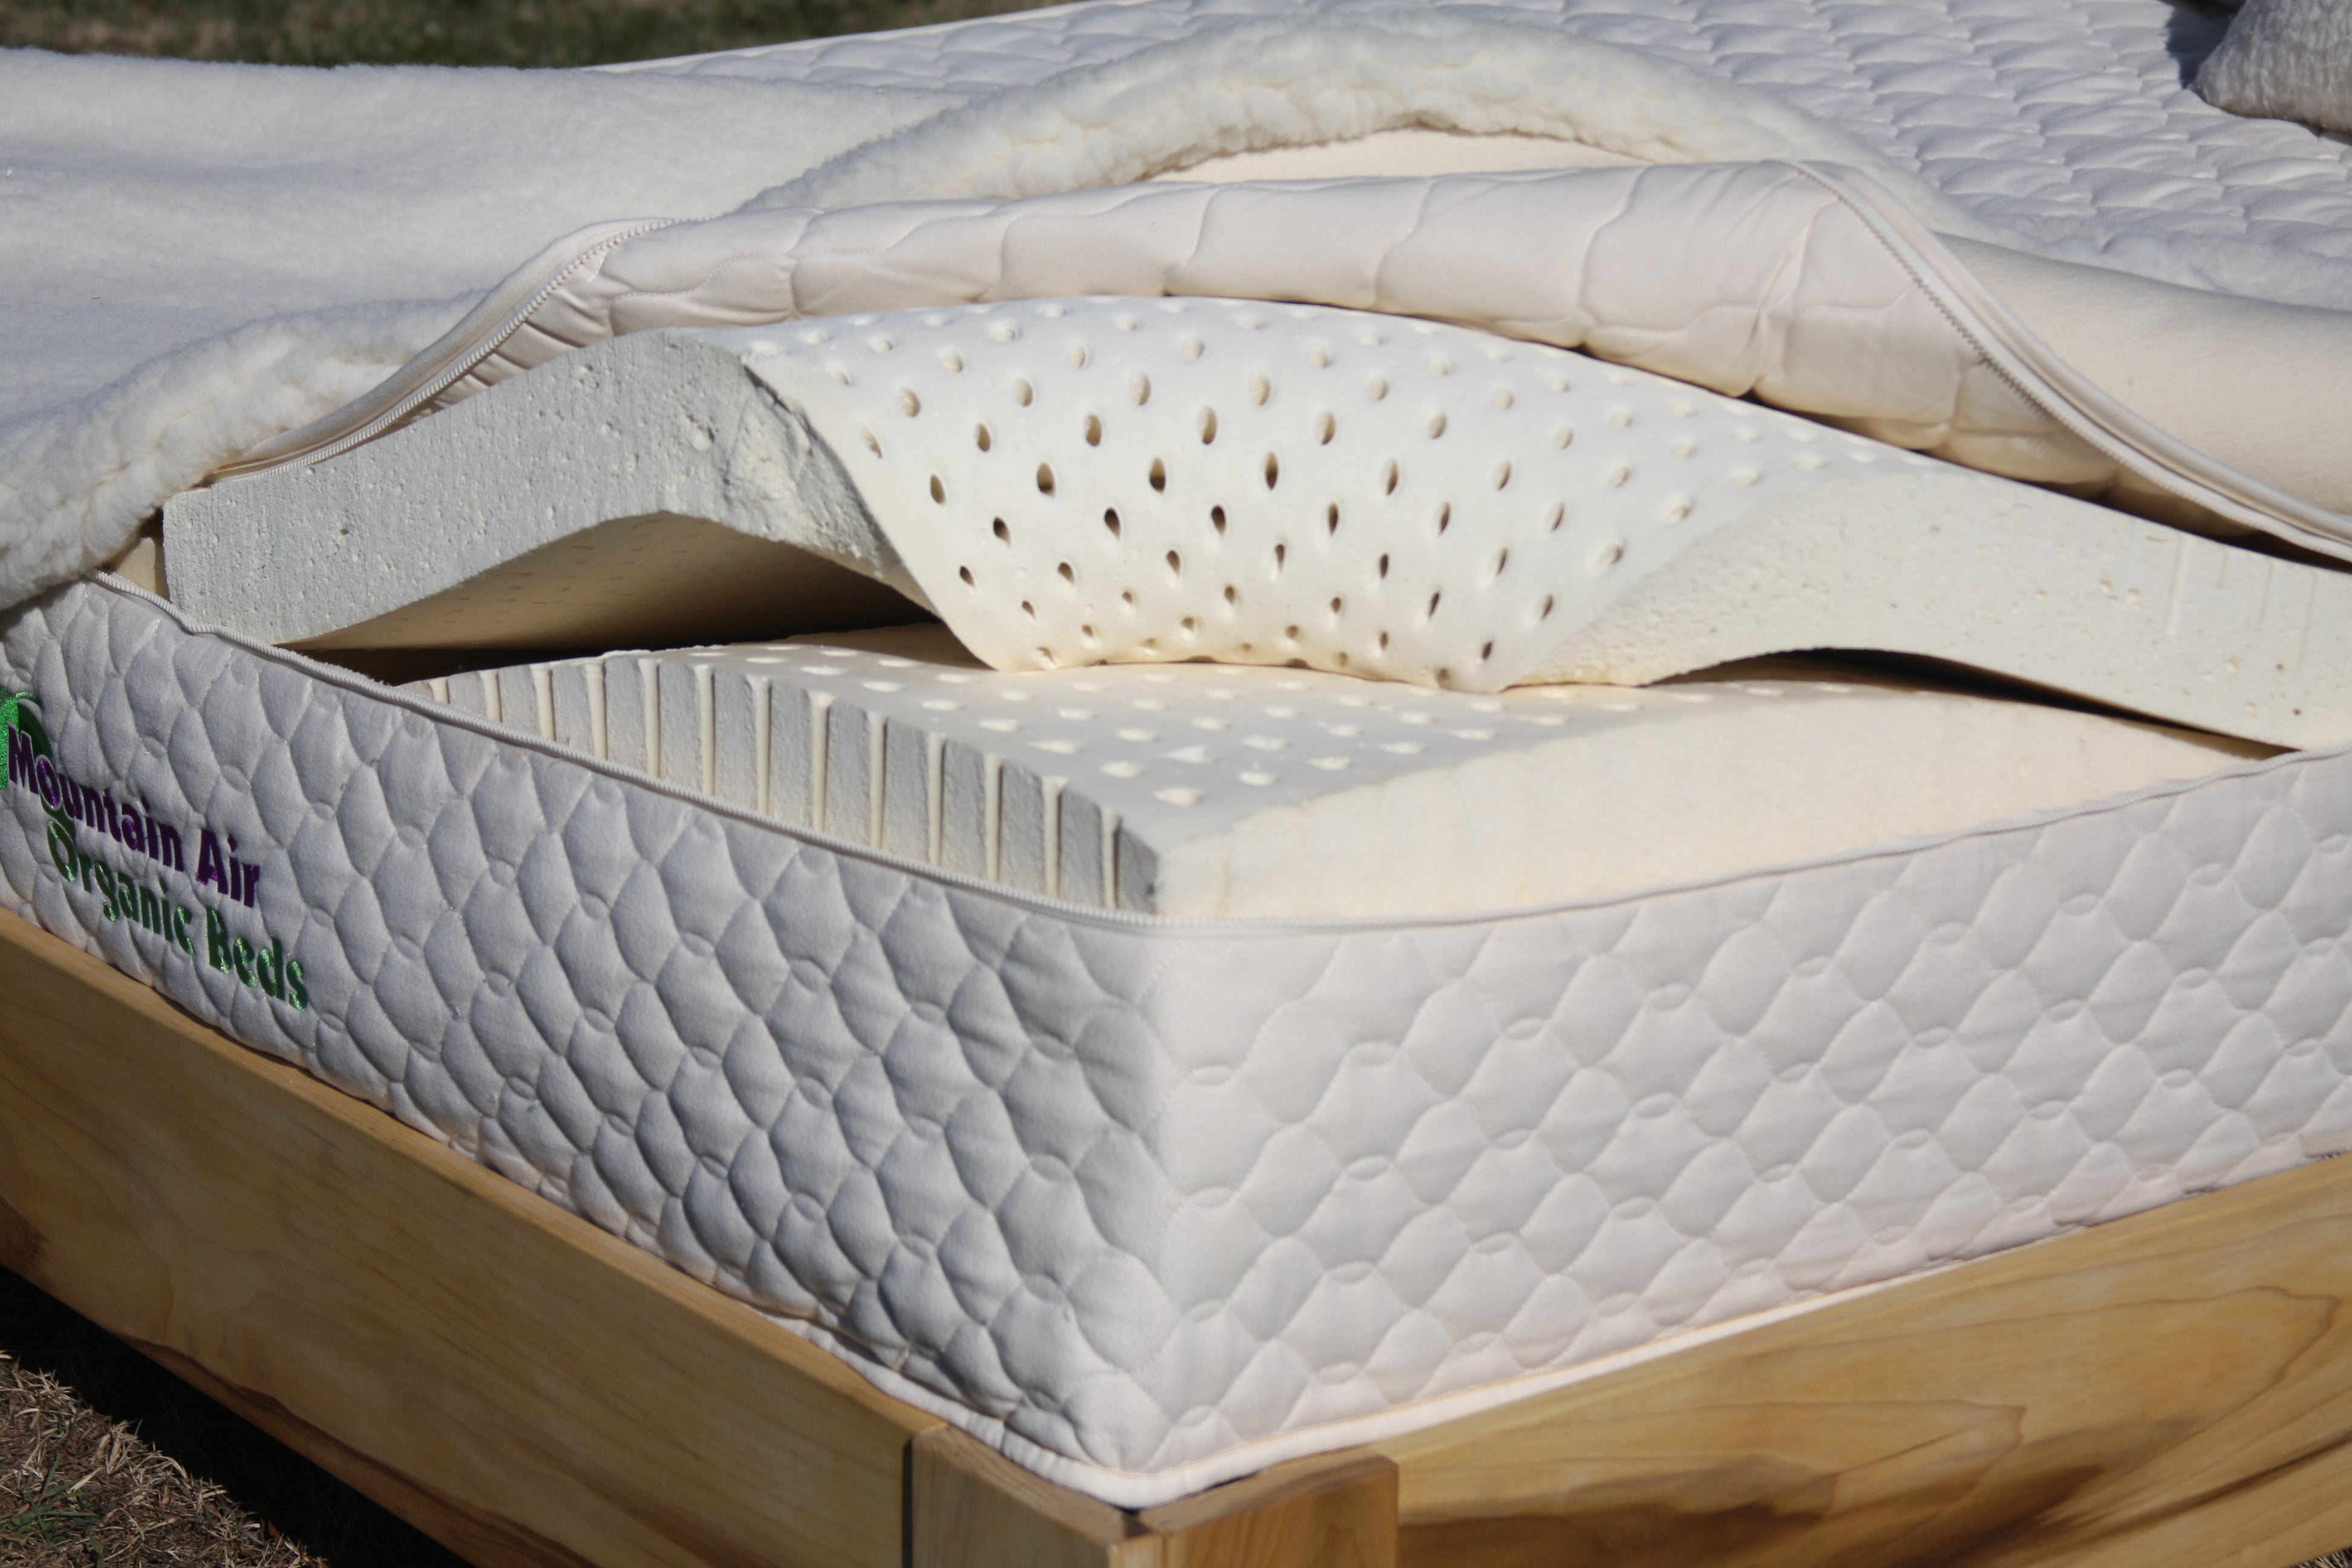 Organic Joy 3-Layer mattress with Quilted Cover Expandable Casing